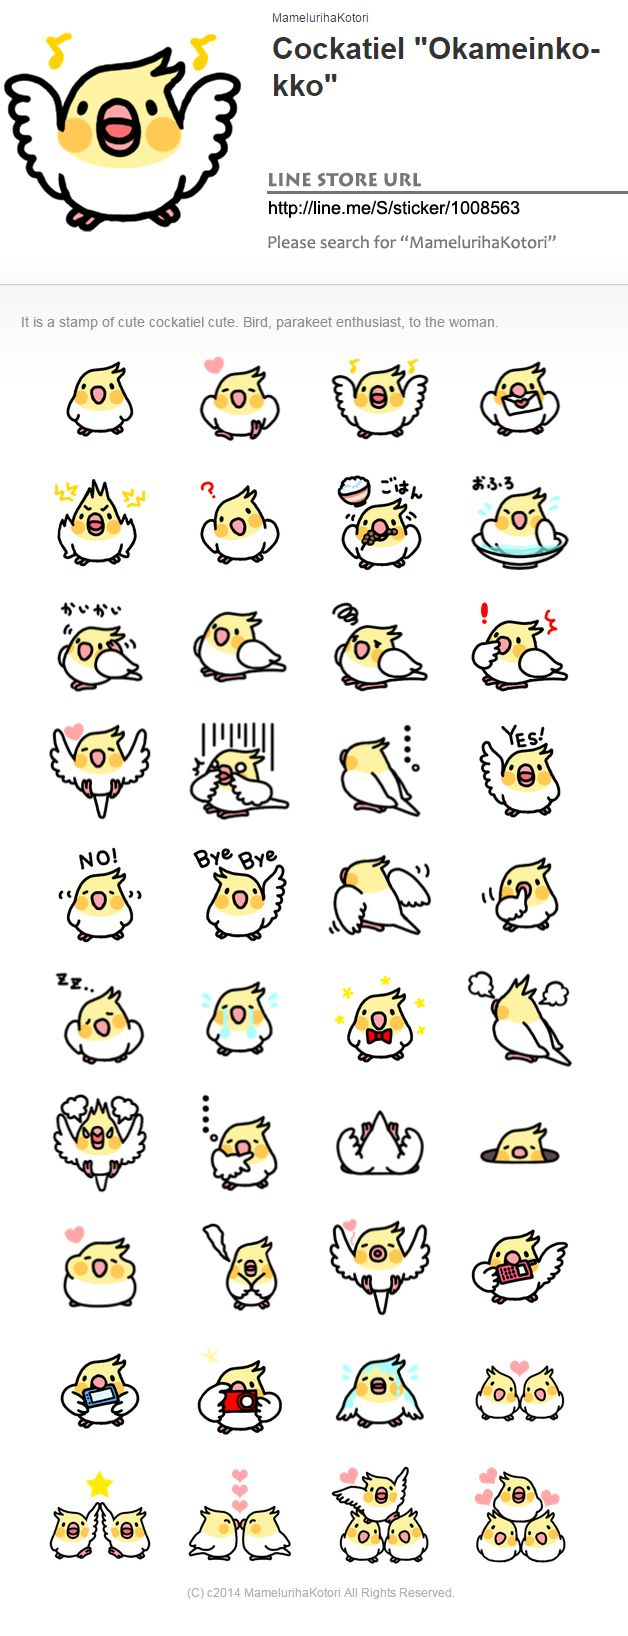 "I made LINE sticker! It is a stamp of cute cockatiel. Cockatiel ""Okameinko-kko"" It is a stamp of cute cockatiel cute. Bird, parakeet enthusiast, to the woman. LINE STORE URL http://line.me/S/sticker/1008563 Please search for ""MamelurihaKotori"""